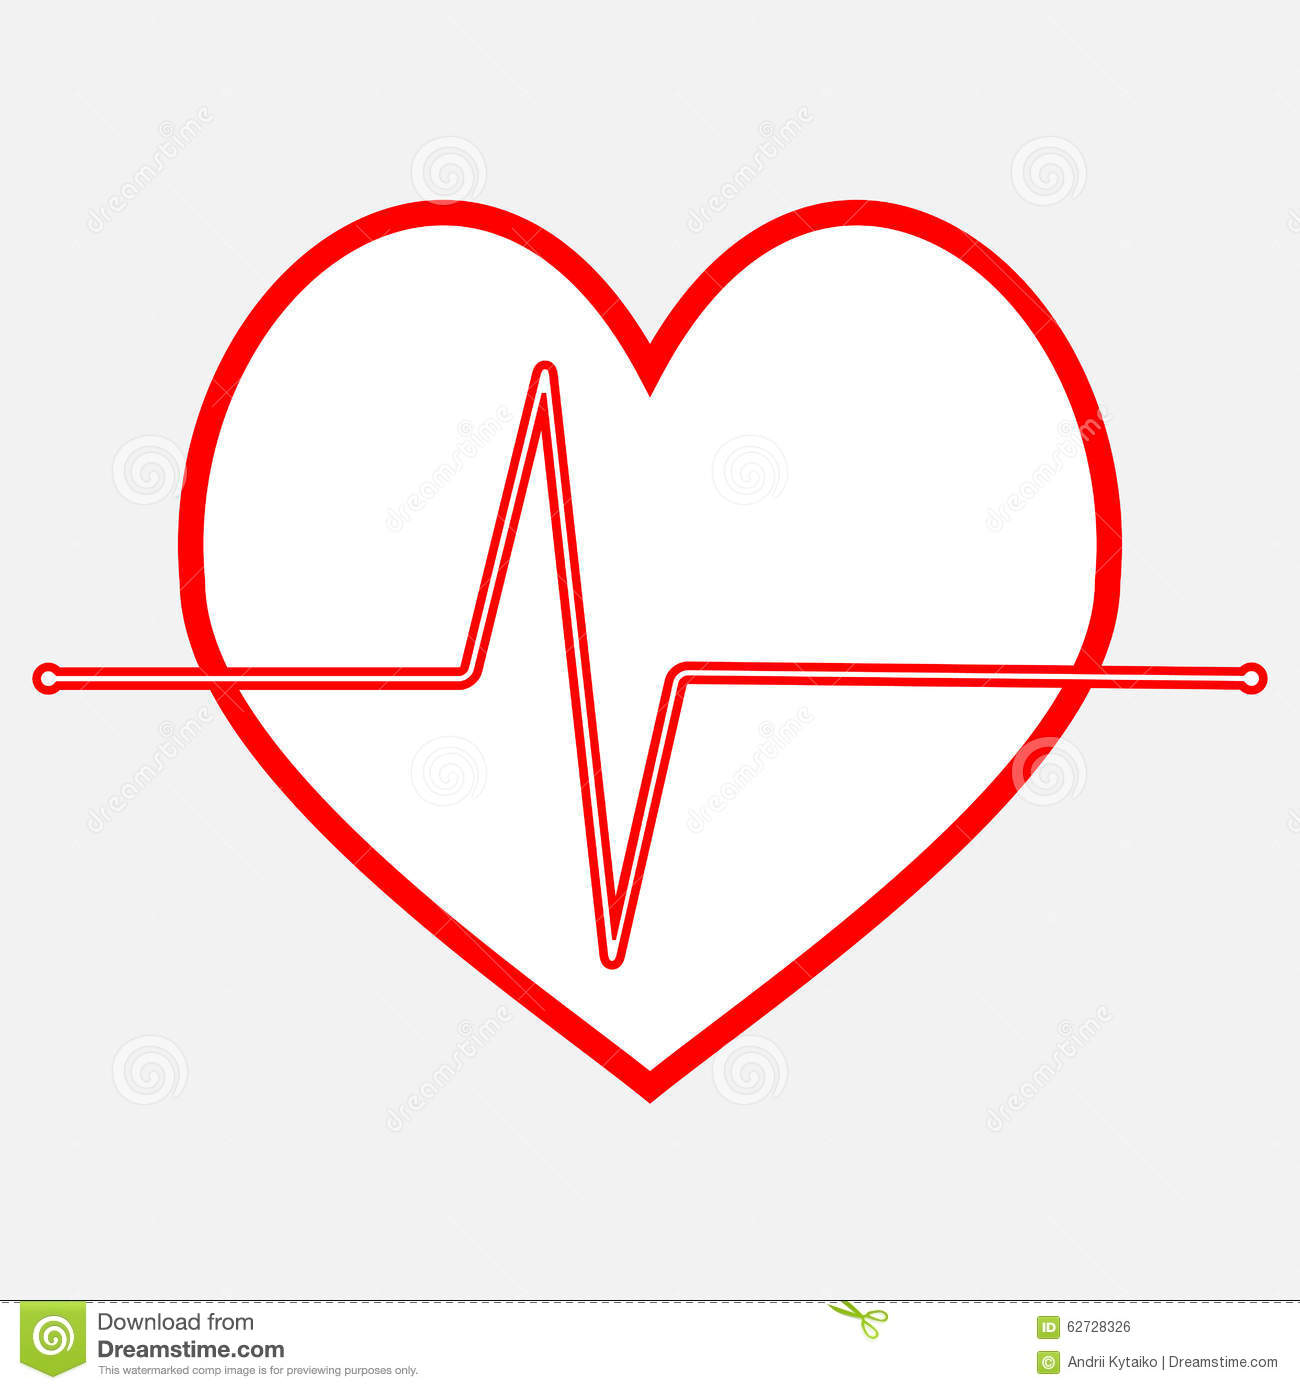 an analysis of cheos health beat Dynamical analysis of heart beat from the viewpoint  the quasi- quantitative tests derived from the chaos theory that were applied for this   underlying that the multifractal structure of healthy subjects is different than that of.